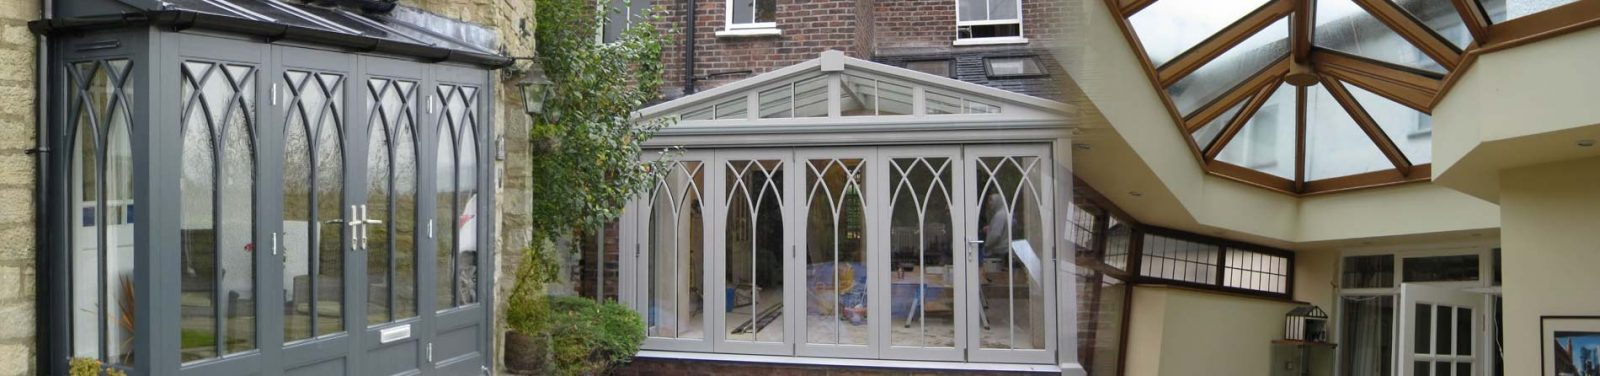 Gothic Conservatory with Orangery and Roof Lantern